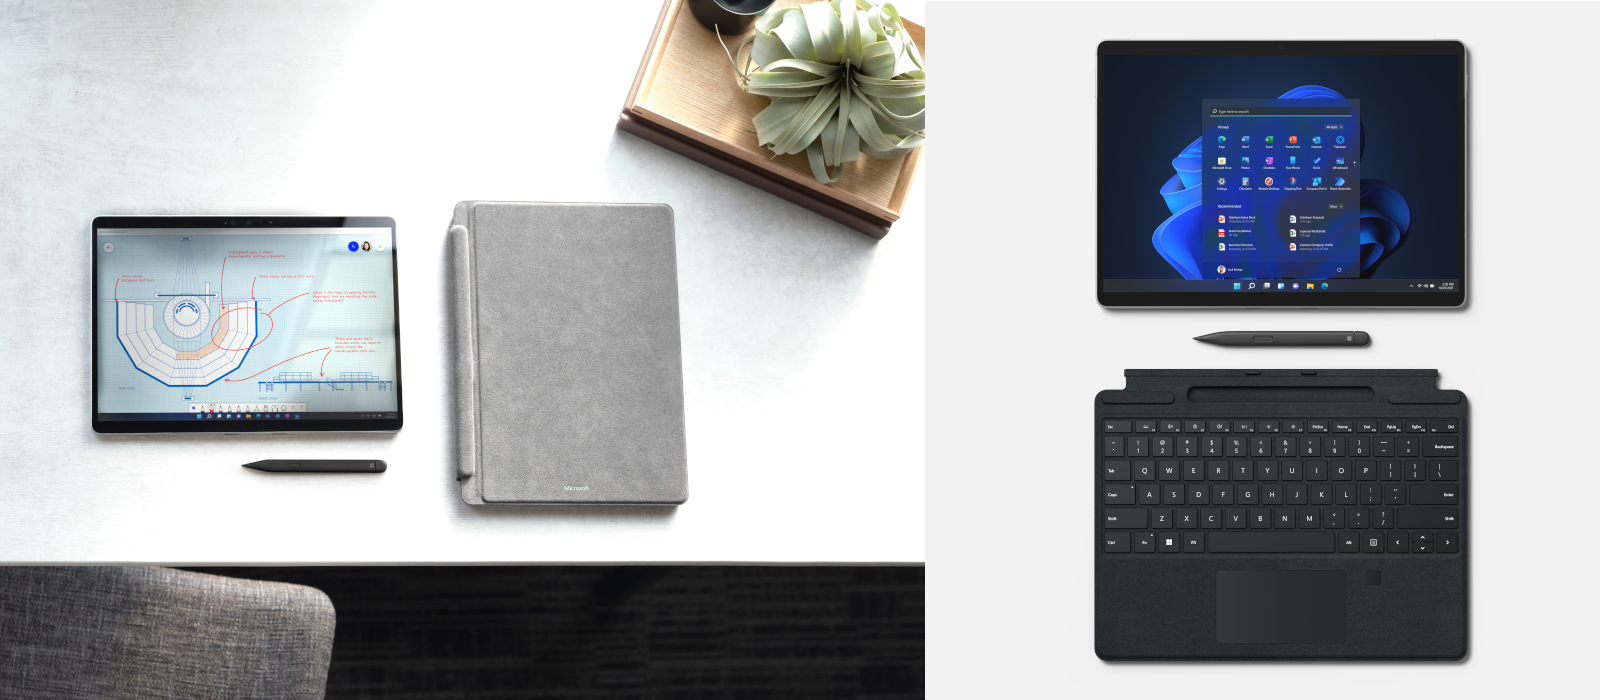 Two images show the new Surface Pro 8 plus the new Type Cover and Surface Slim Pen 2.